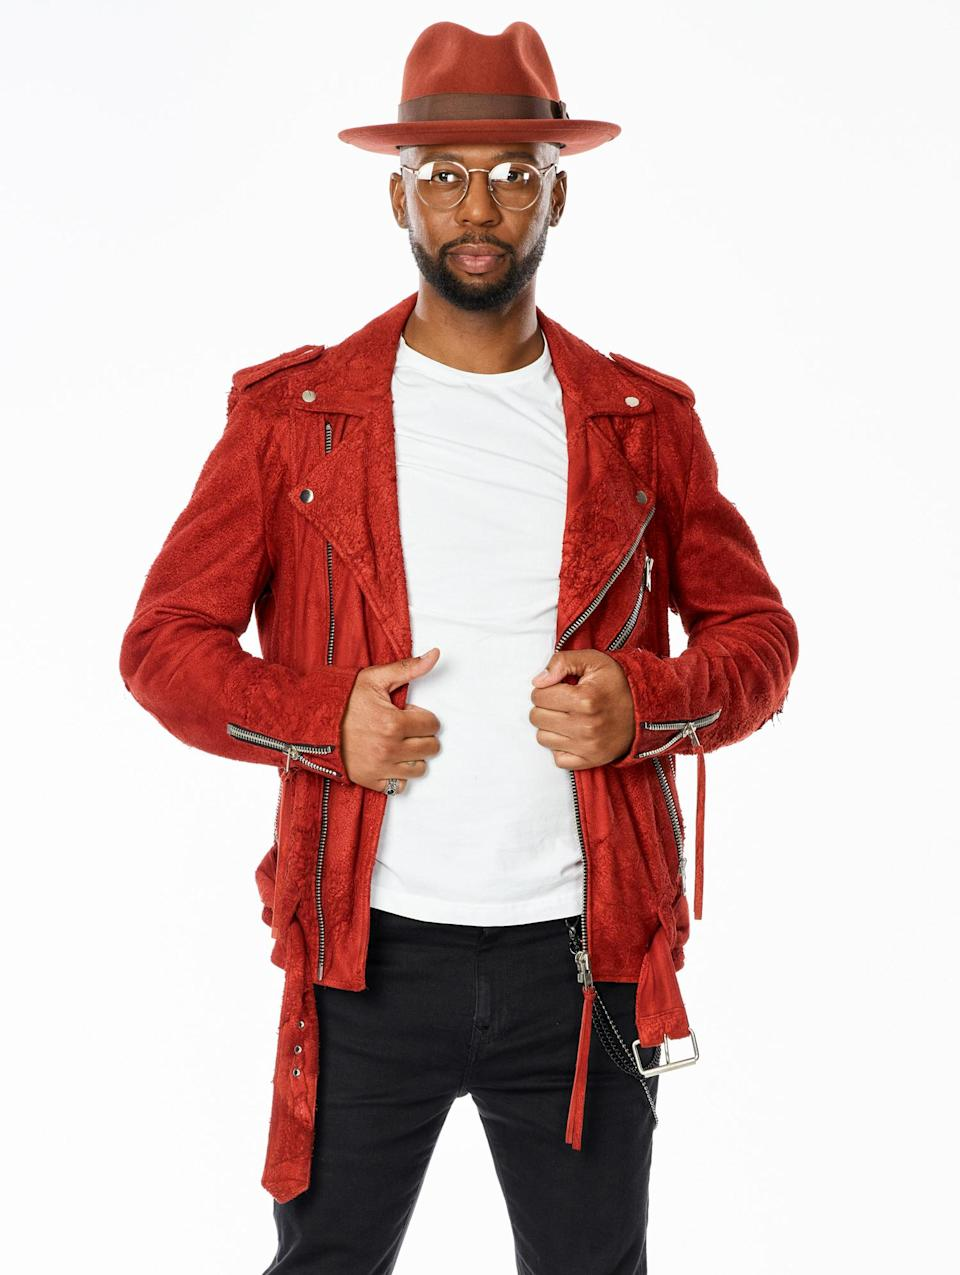 """<p><strong>Age:</strong> 35</p> <p><strong>Hometown:</strong> Aurora, Colorado</p> <p><strong>Resident:</strong> Denver, Colorado</p> <p>Jones has always loved singing, and he committed himself to pursuing music after graduating high school. He got hired to sing in an Afrobeat band and took on the task of teaching himself to sing in Swahili. For 17 years, Jones performed in a wedding band and at various community events while also working his way up in office jobs to pay the bills. He is now a client relations manager at a tech firm, but he still dreams of being a professional singer. Jones is ready to make his dream a reality on <em>The Voice</em>.</p> <p>""""This experience has been a dream come true and has been overwhelmingly exciting and humbling,"""" he says. """"I've been a huge fan of Nick Jonas for so long.""""</p> <p>He adds: """"I'm very excited to get to work with him on <em>The Voice</em> Season 20, and I'm extremely thankful for this opportunity!""""</p>"""